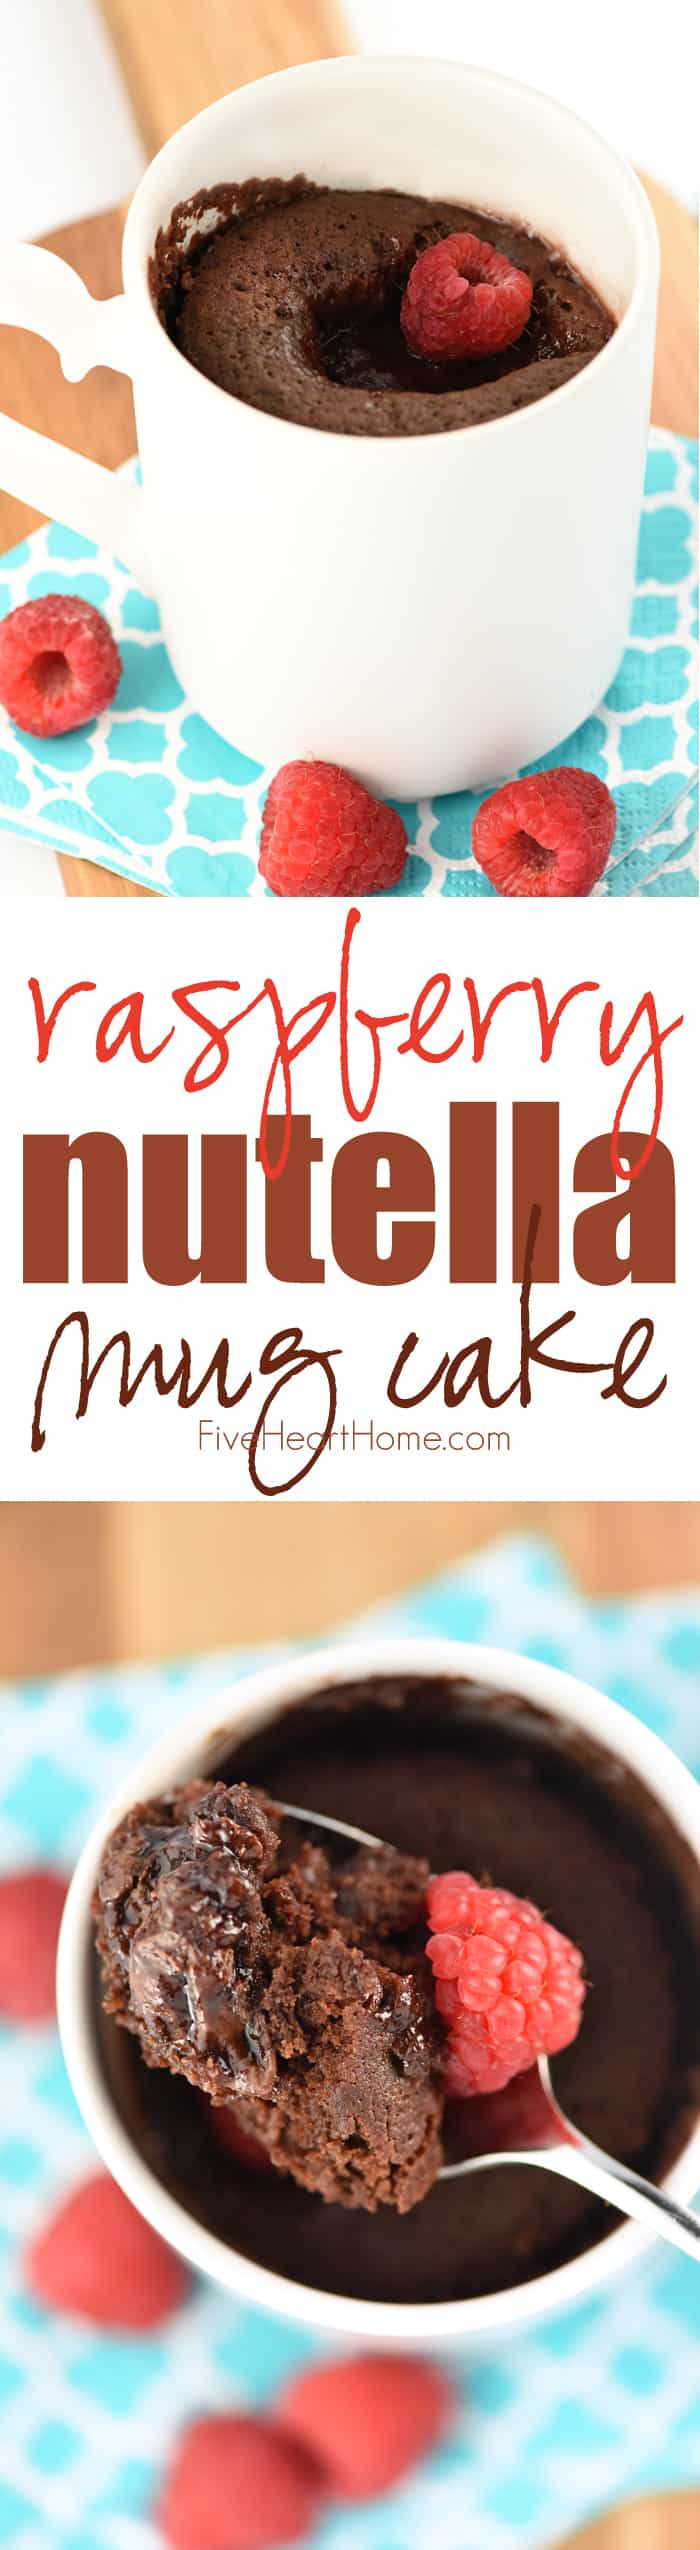 Raspberry Nutella Mug Cake ~ fluffy chocolate cake with a molten center of Nutella and raspberry preserves...and best of all, it's portion-controlled and ready to eat in just a few short minutes! | FiveHeartHome.com